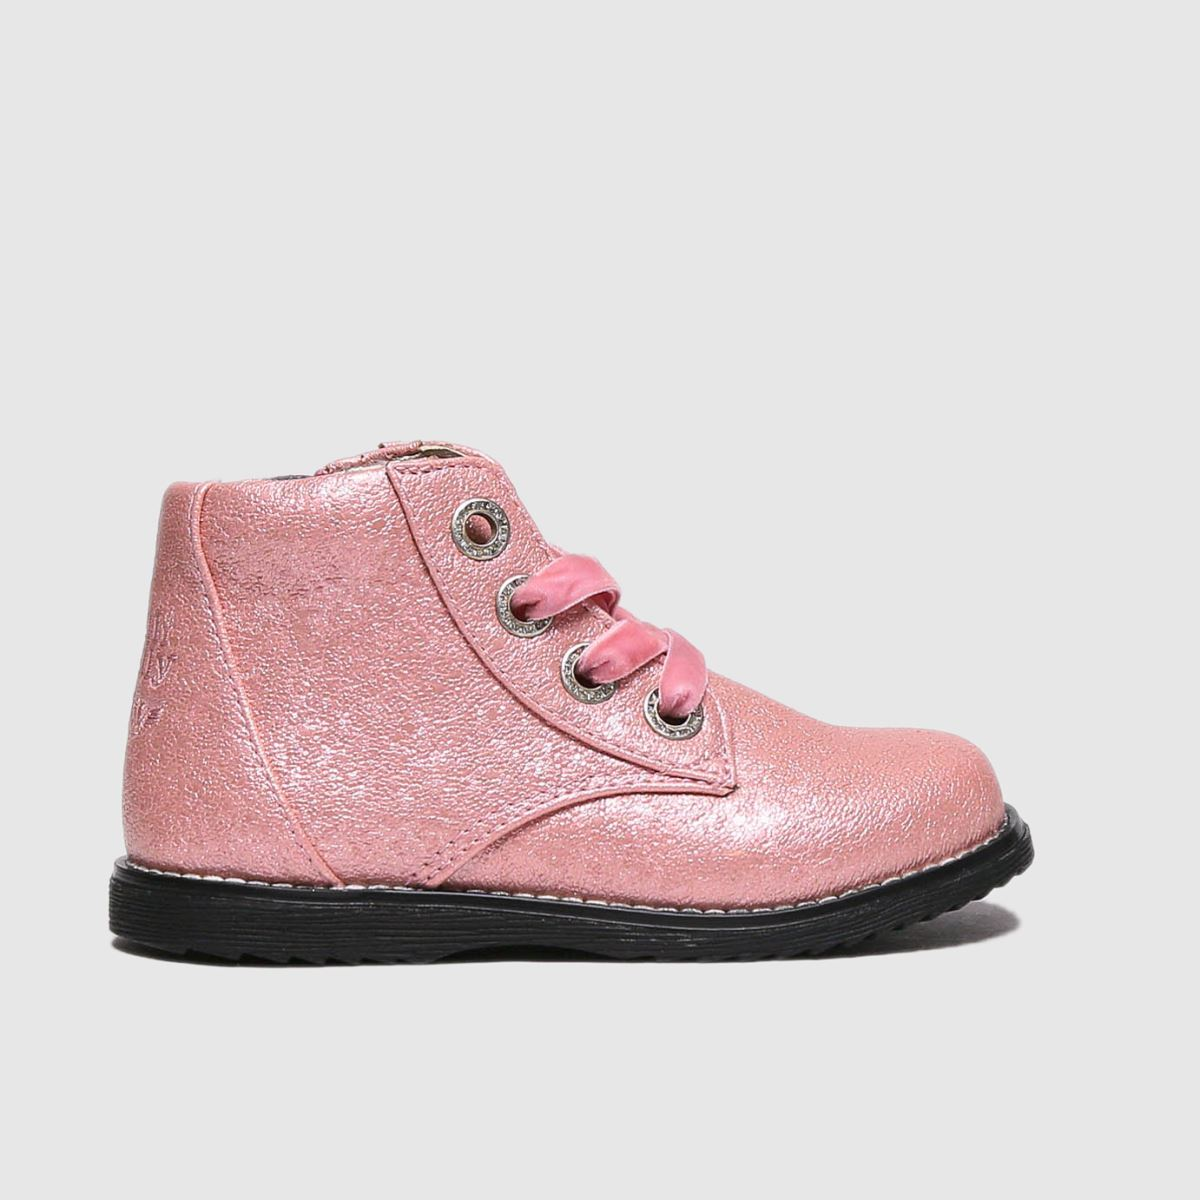 Lelli Kelly Pale Pink Sarah Boots Toddler